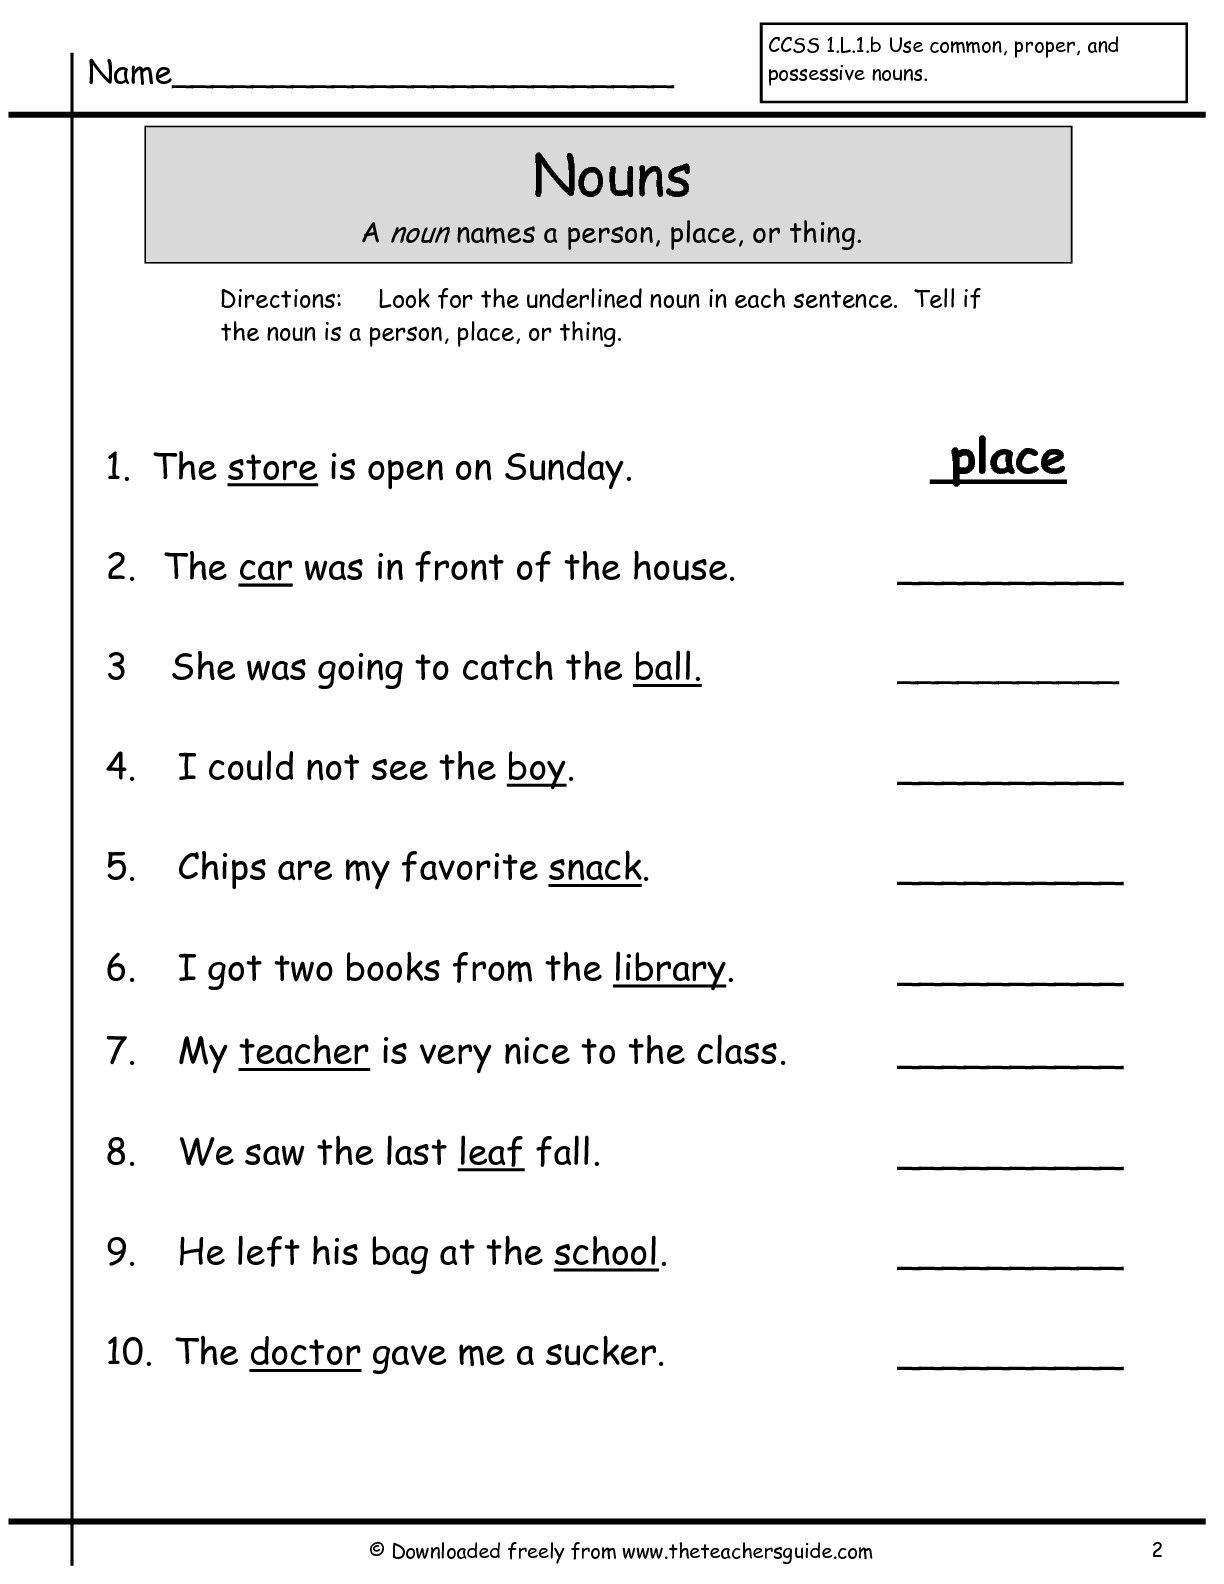 28 Nouns Printable Worksheet For Grade 1 Printable Nouns